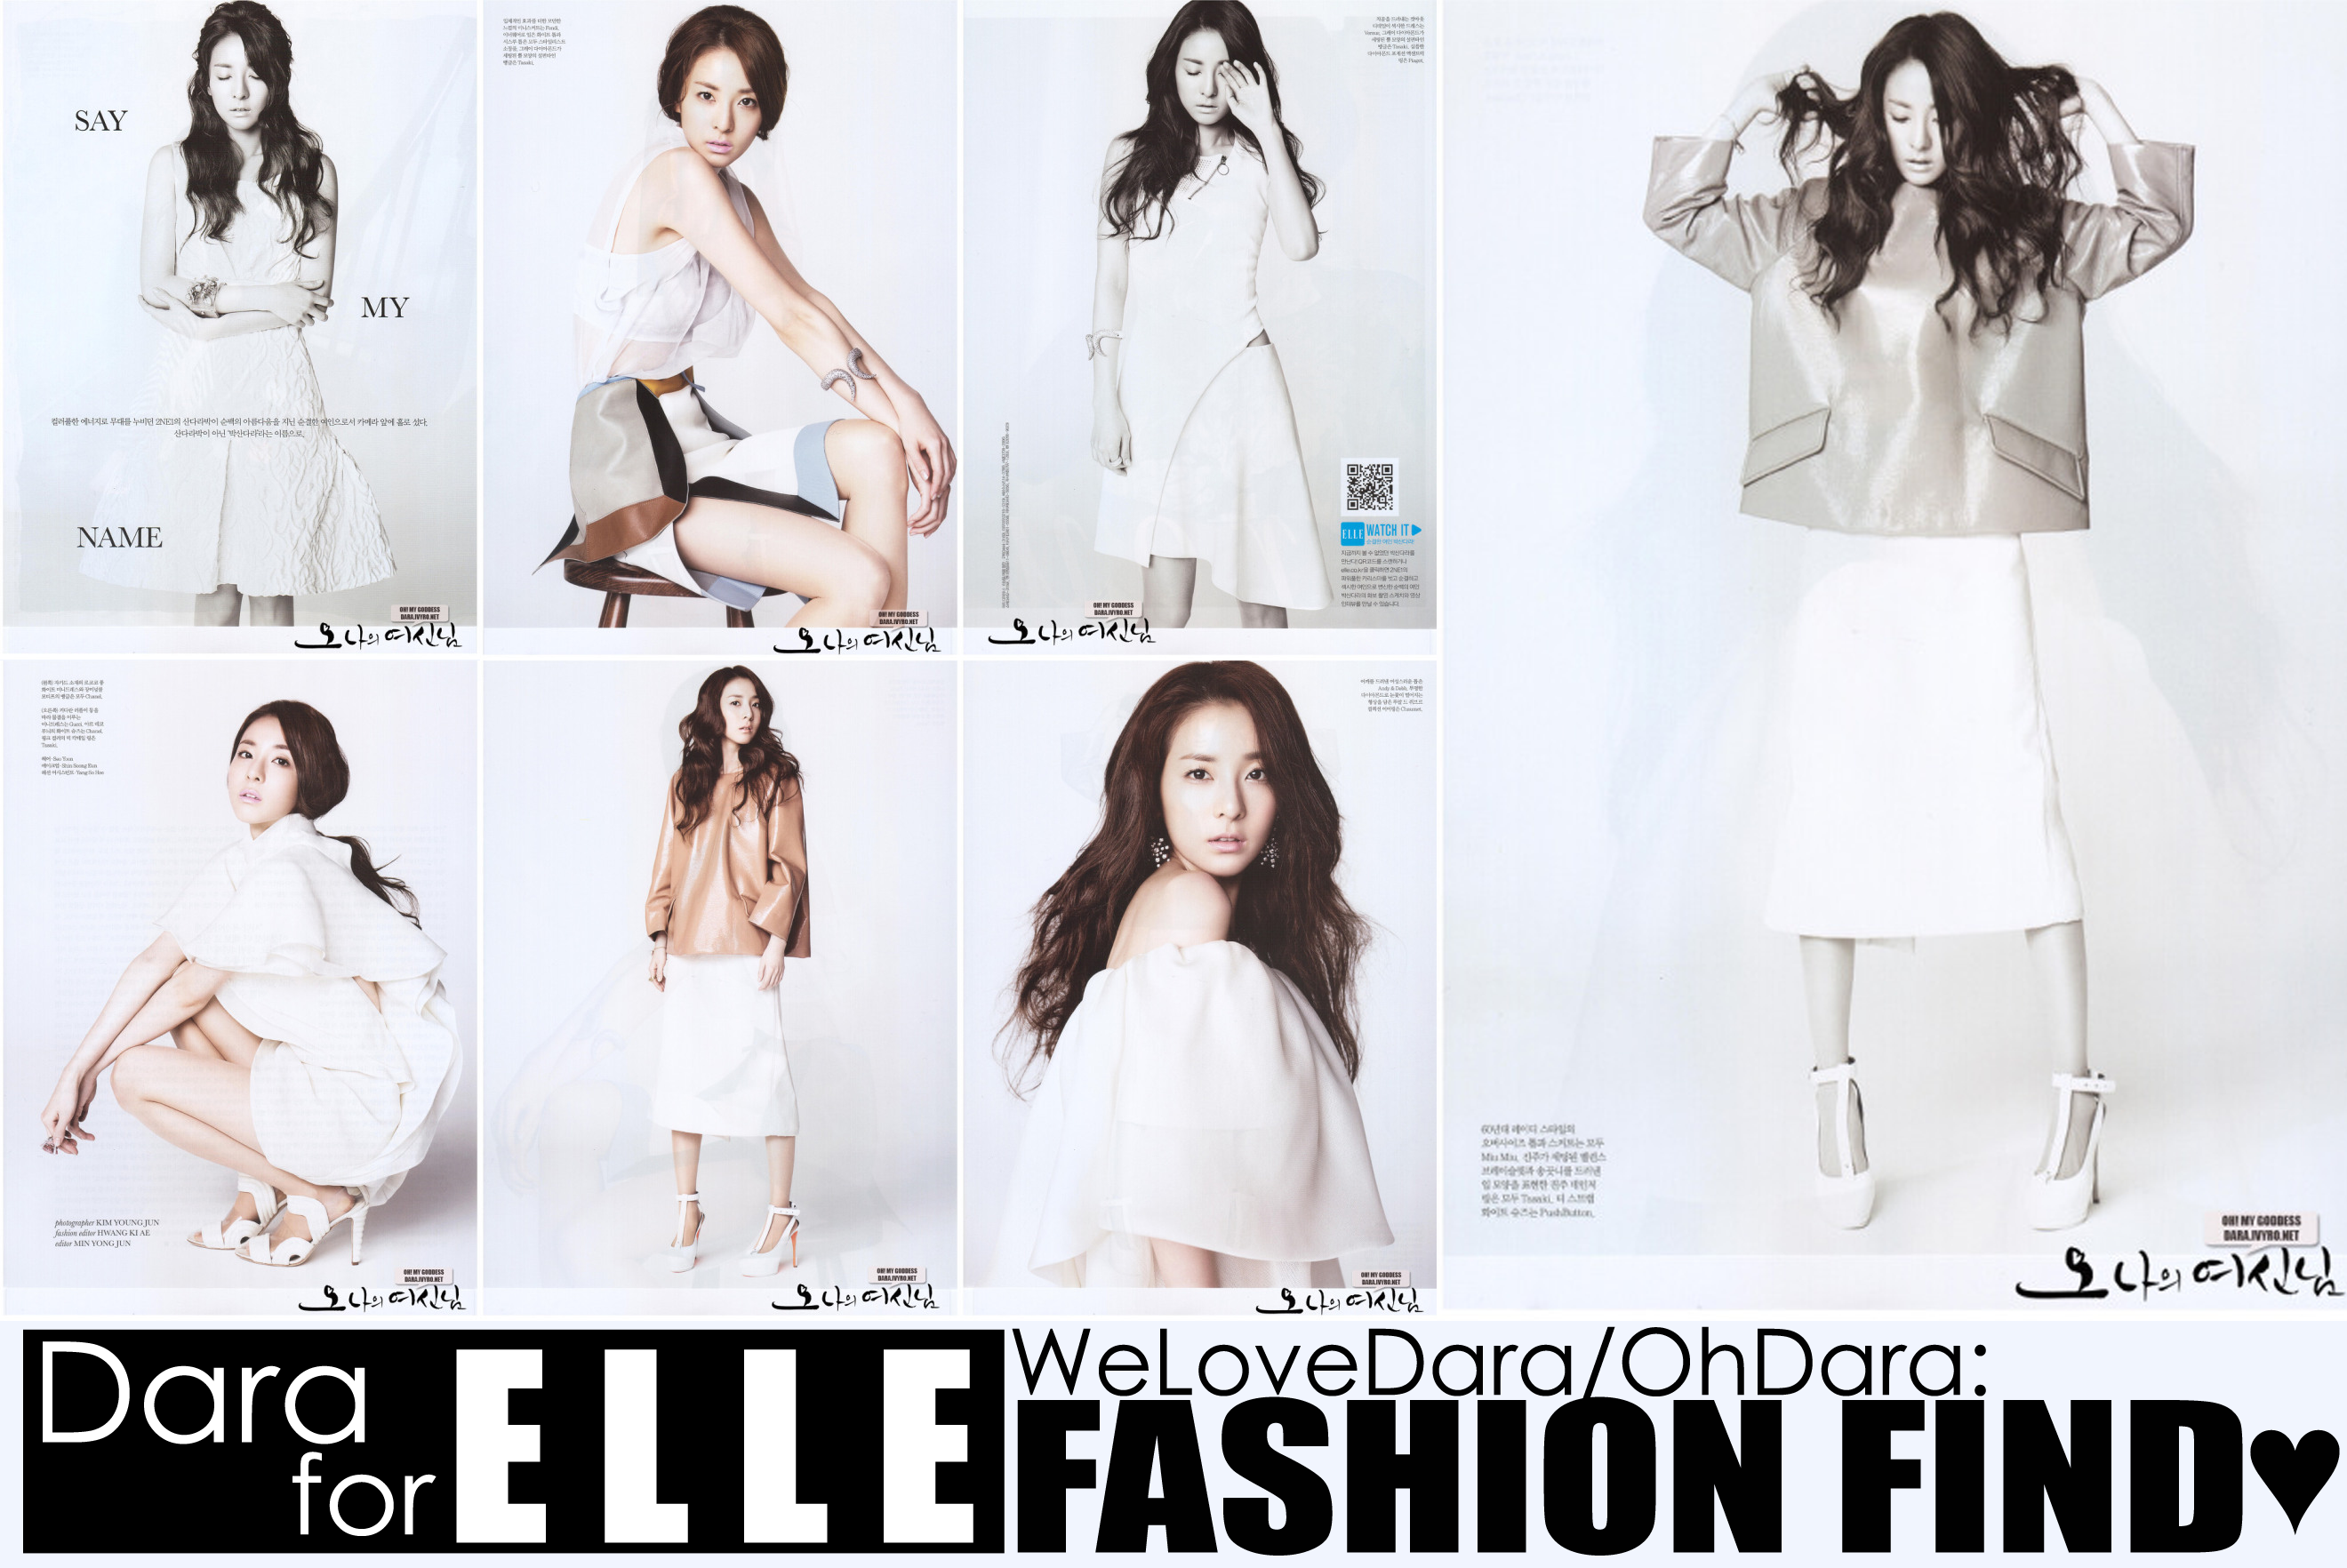 Dara for elle for Elle subscription change address